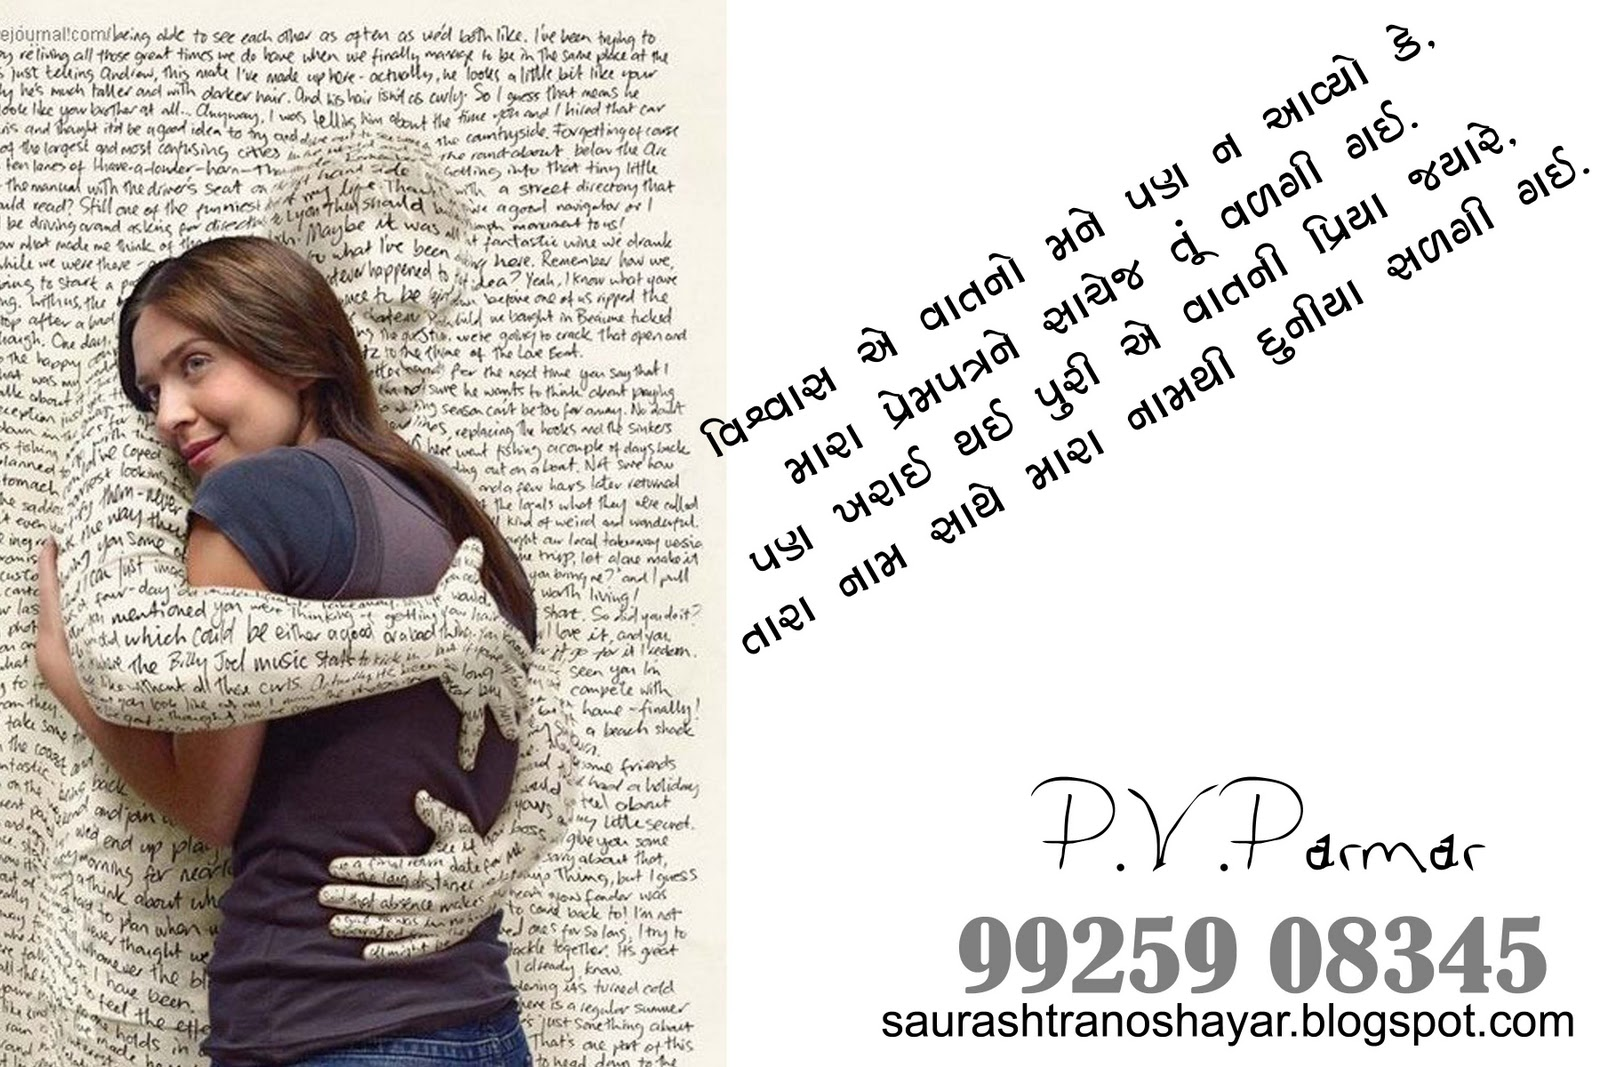 Funny love letters in hindi language gujarati shayari love letter images thecheapjerseys Images